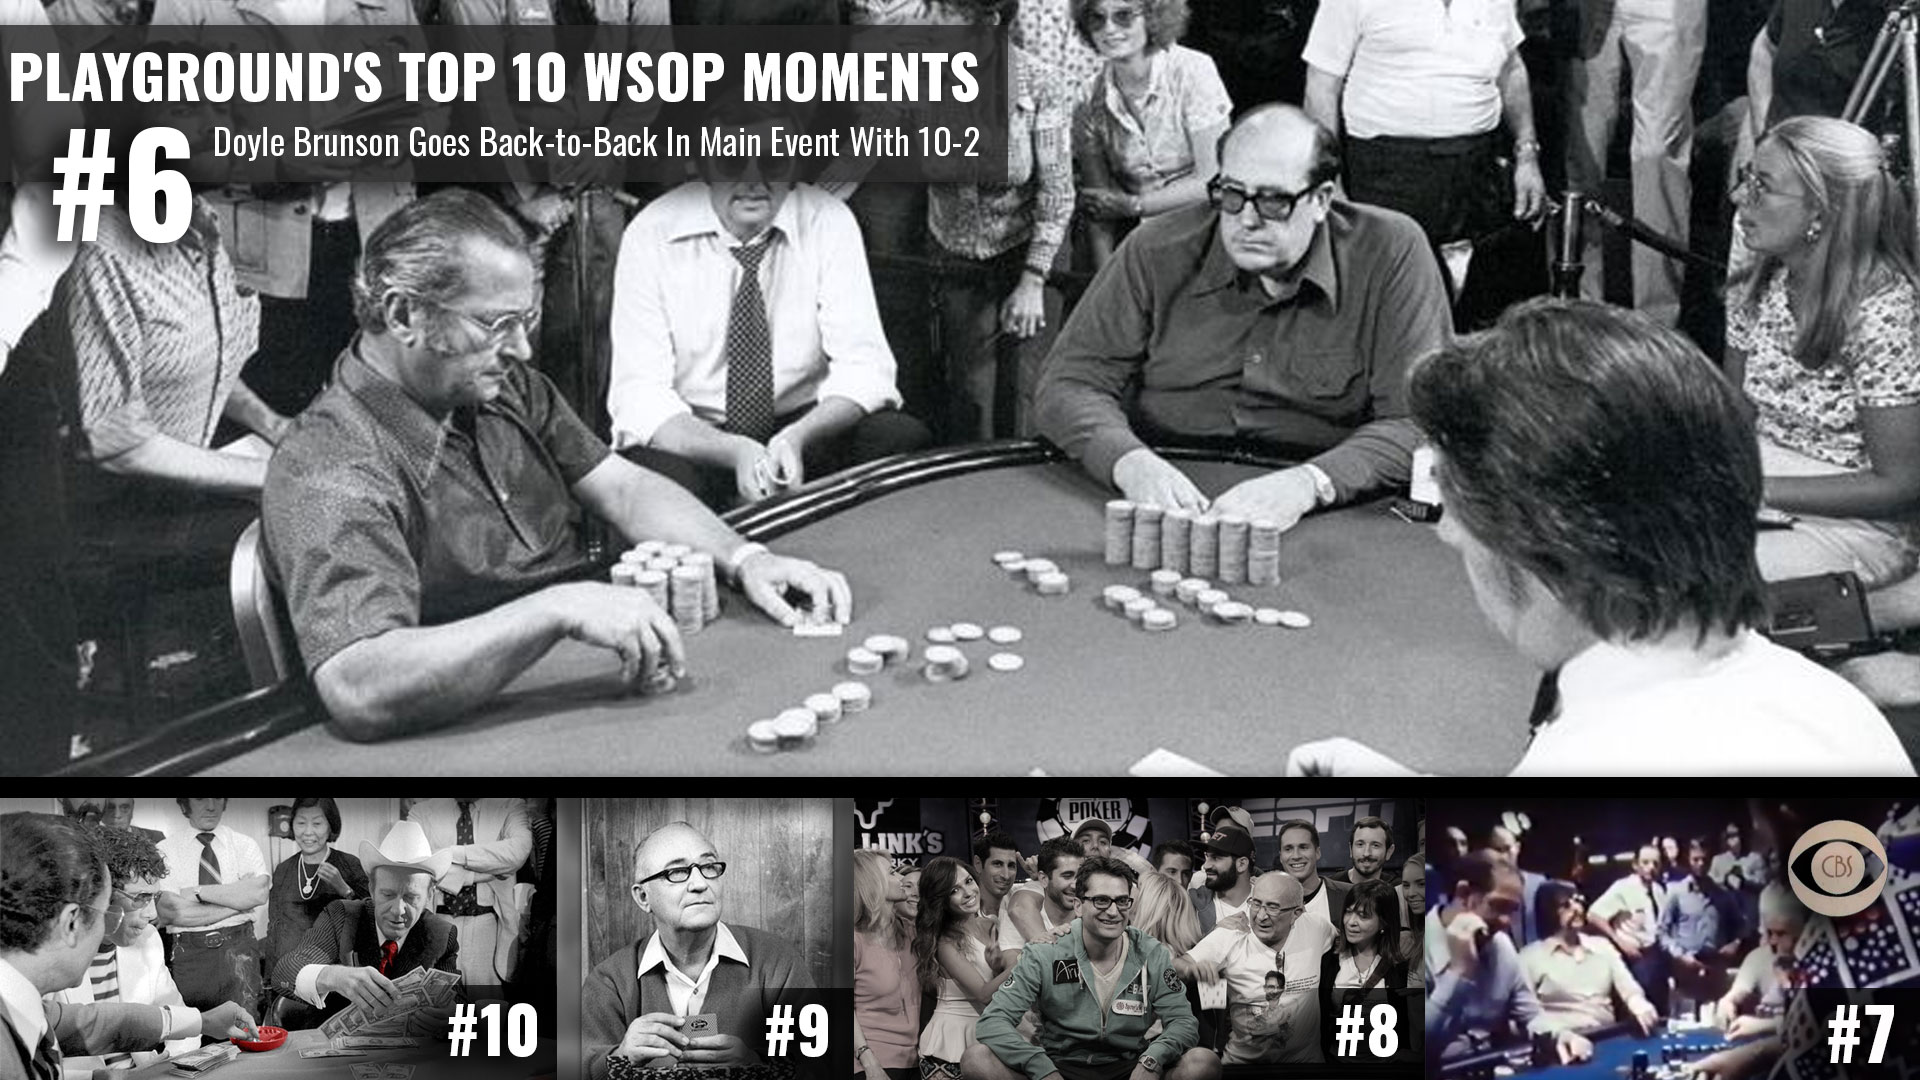 Top Moments in the History of the World Series of Poker